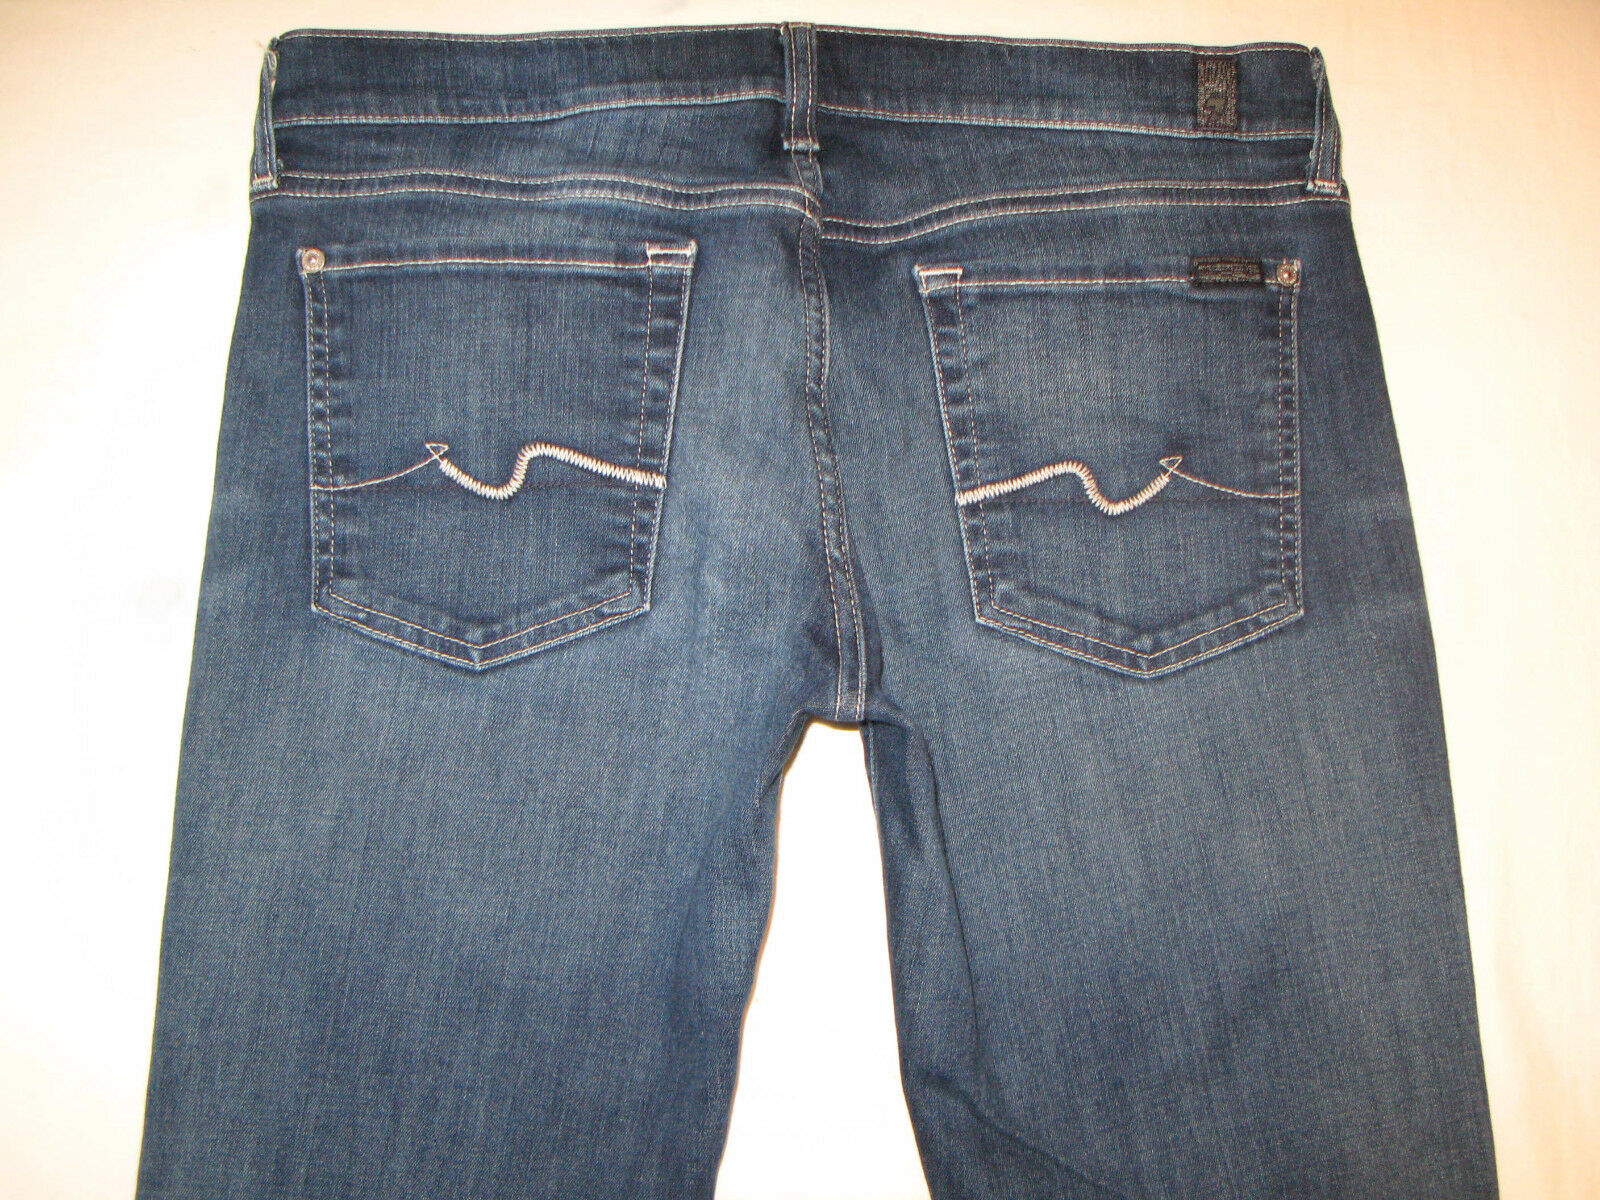 7 for all Mankind Womens Bootcut Jeans Sz 31 w Stretch Distressed Wash